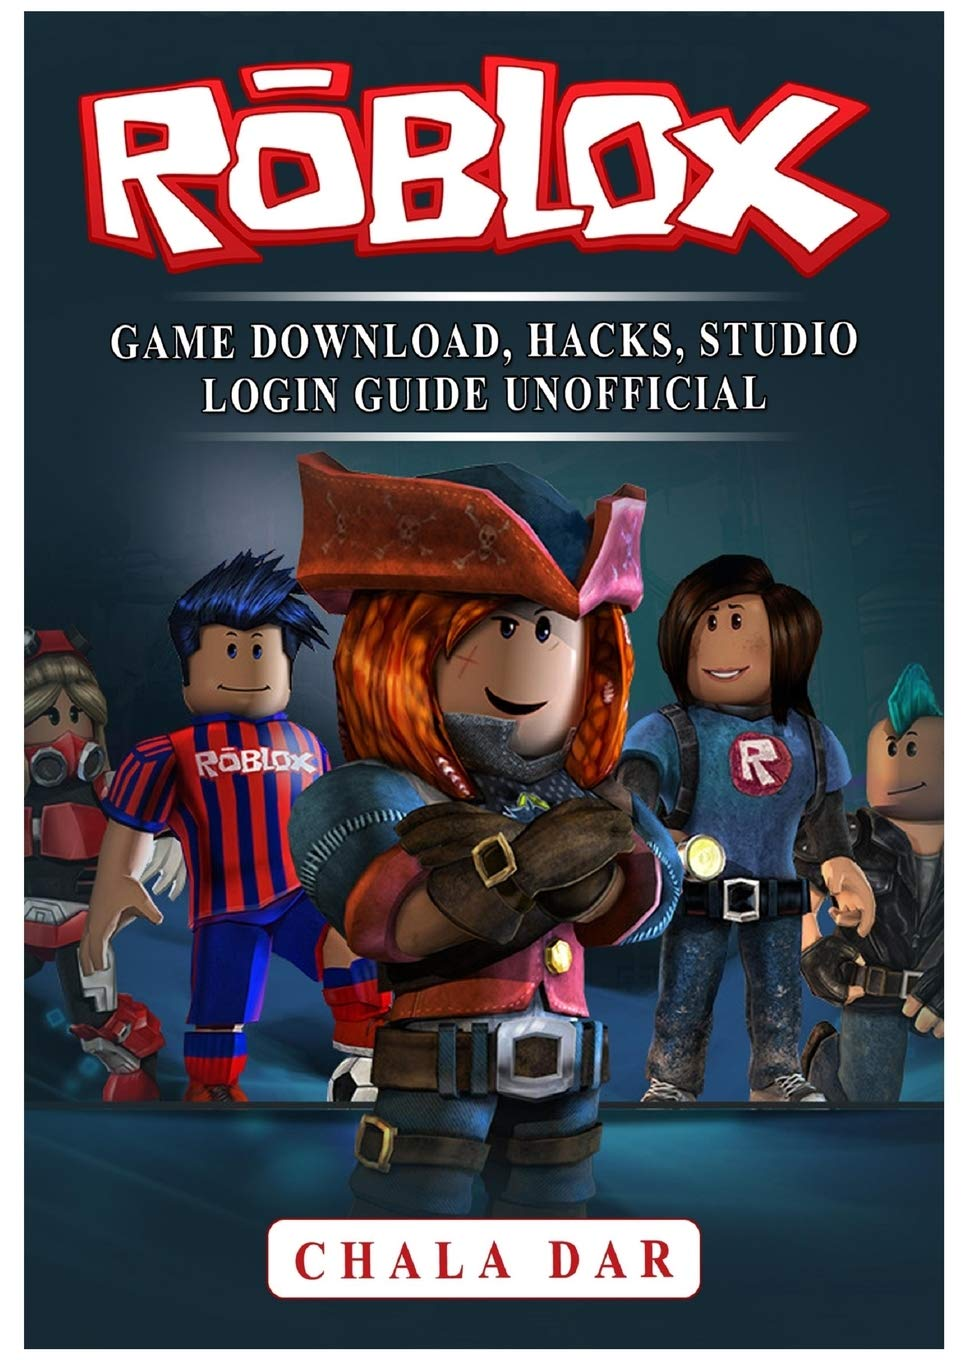 Hacking Apps For Roblox Games Roblox Game Download Hacks Studio Login Guide Unofficial Dar Chala 9781979532655 Amazon Com Books